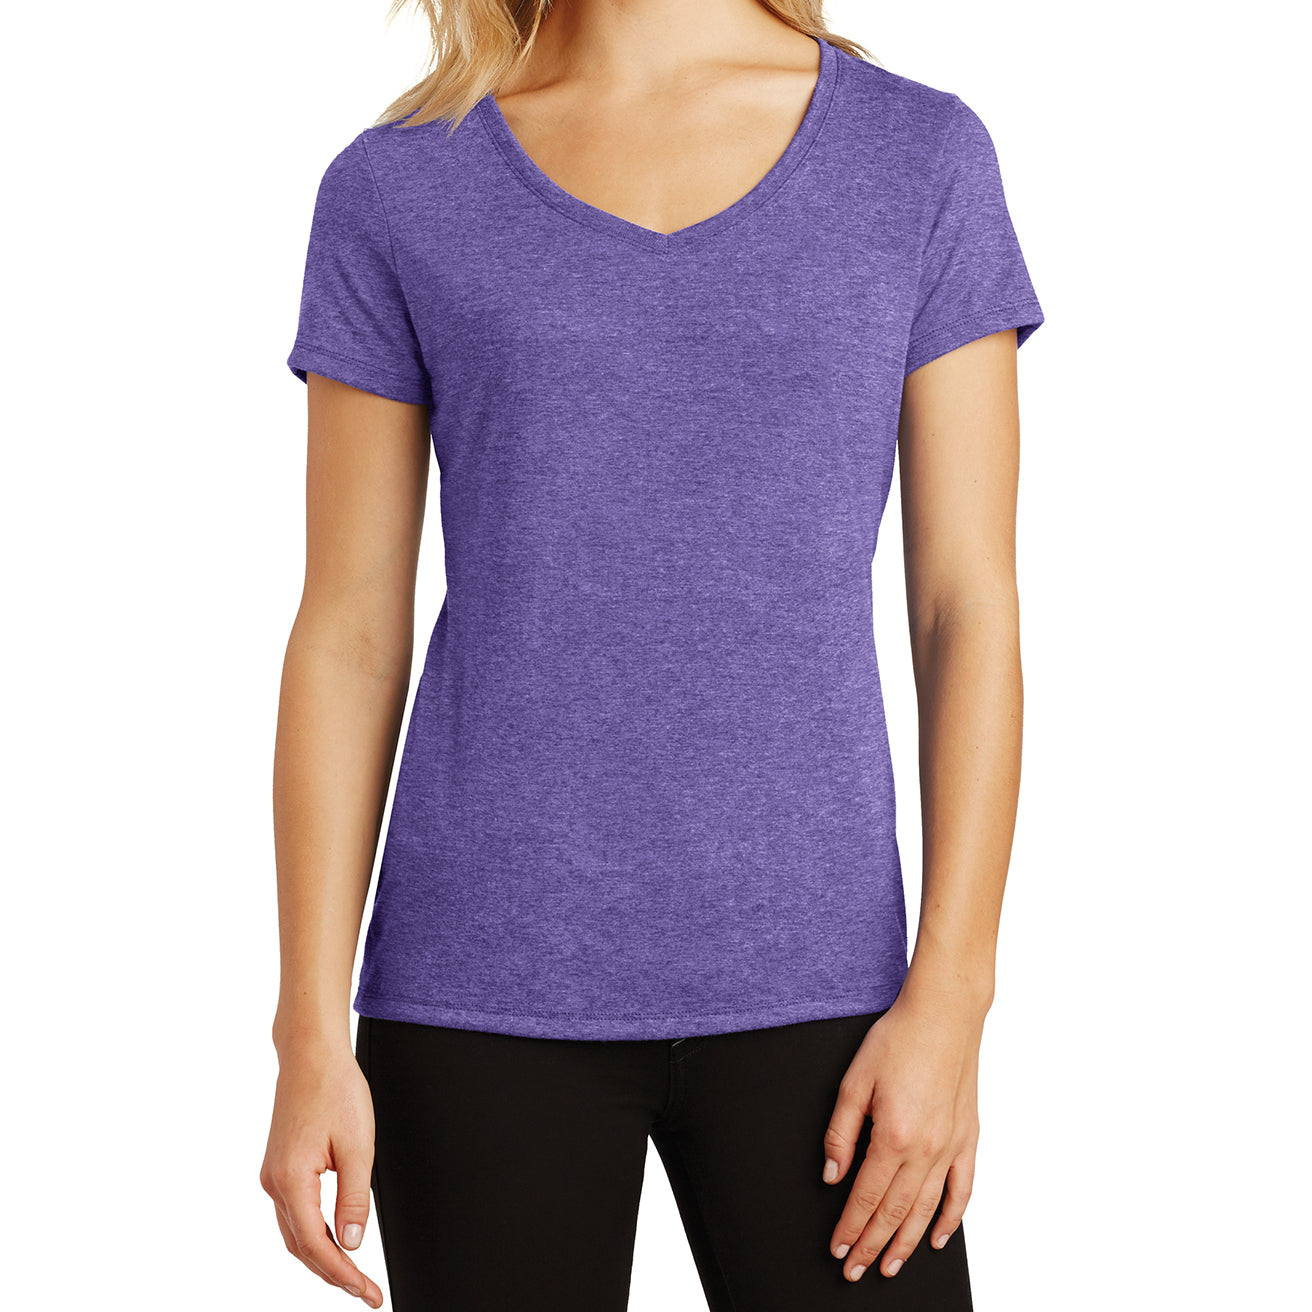 Women's Perfect Tri V-Neck Tee - Purple Frost - Front